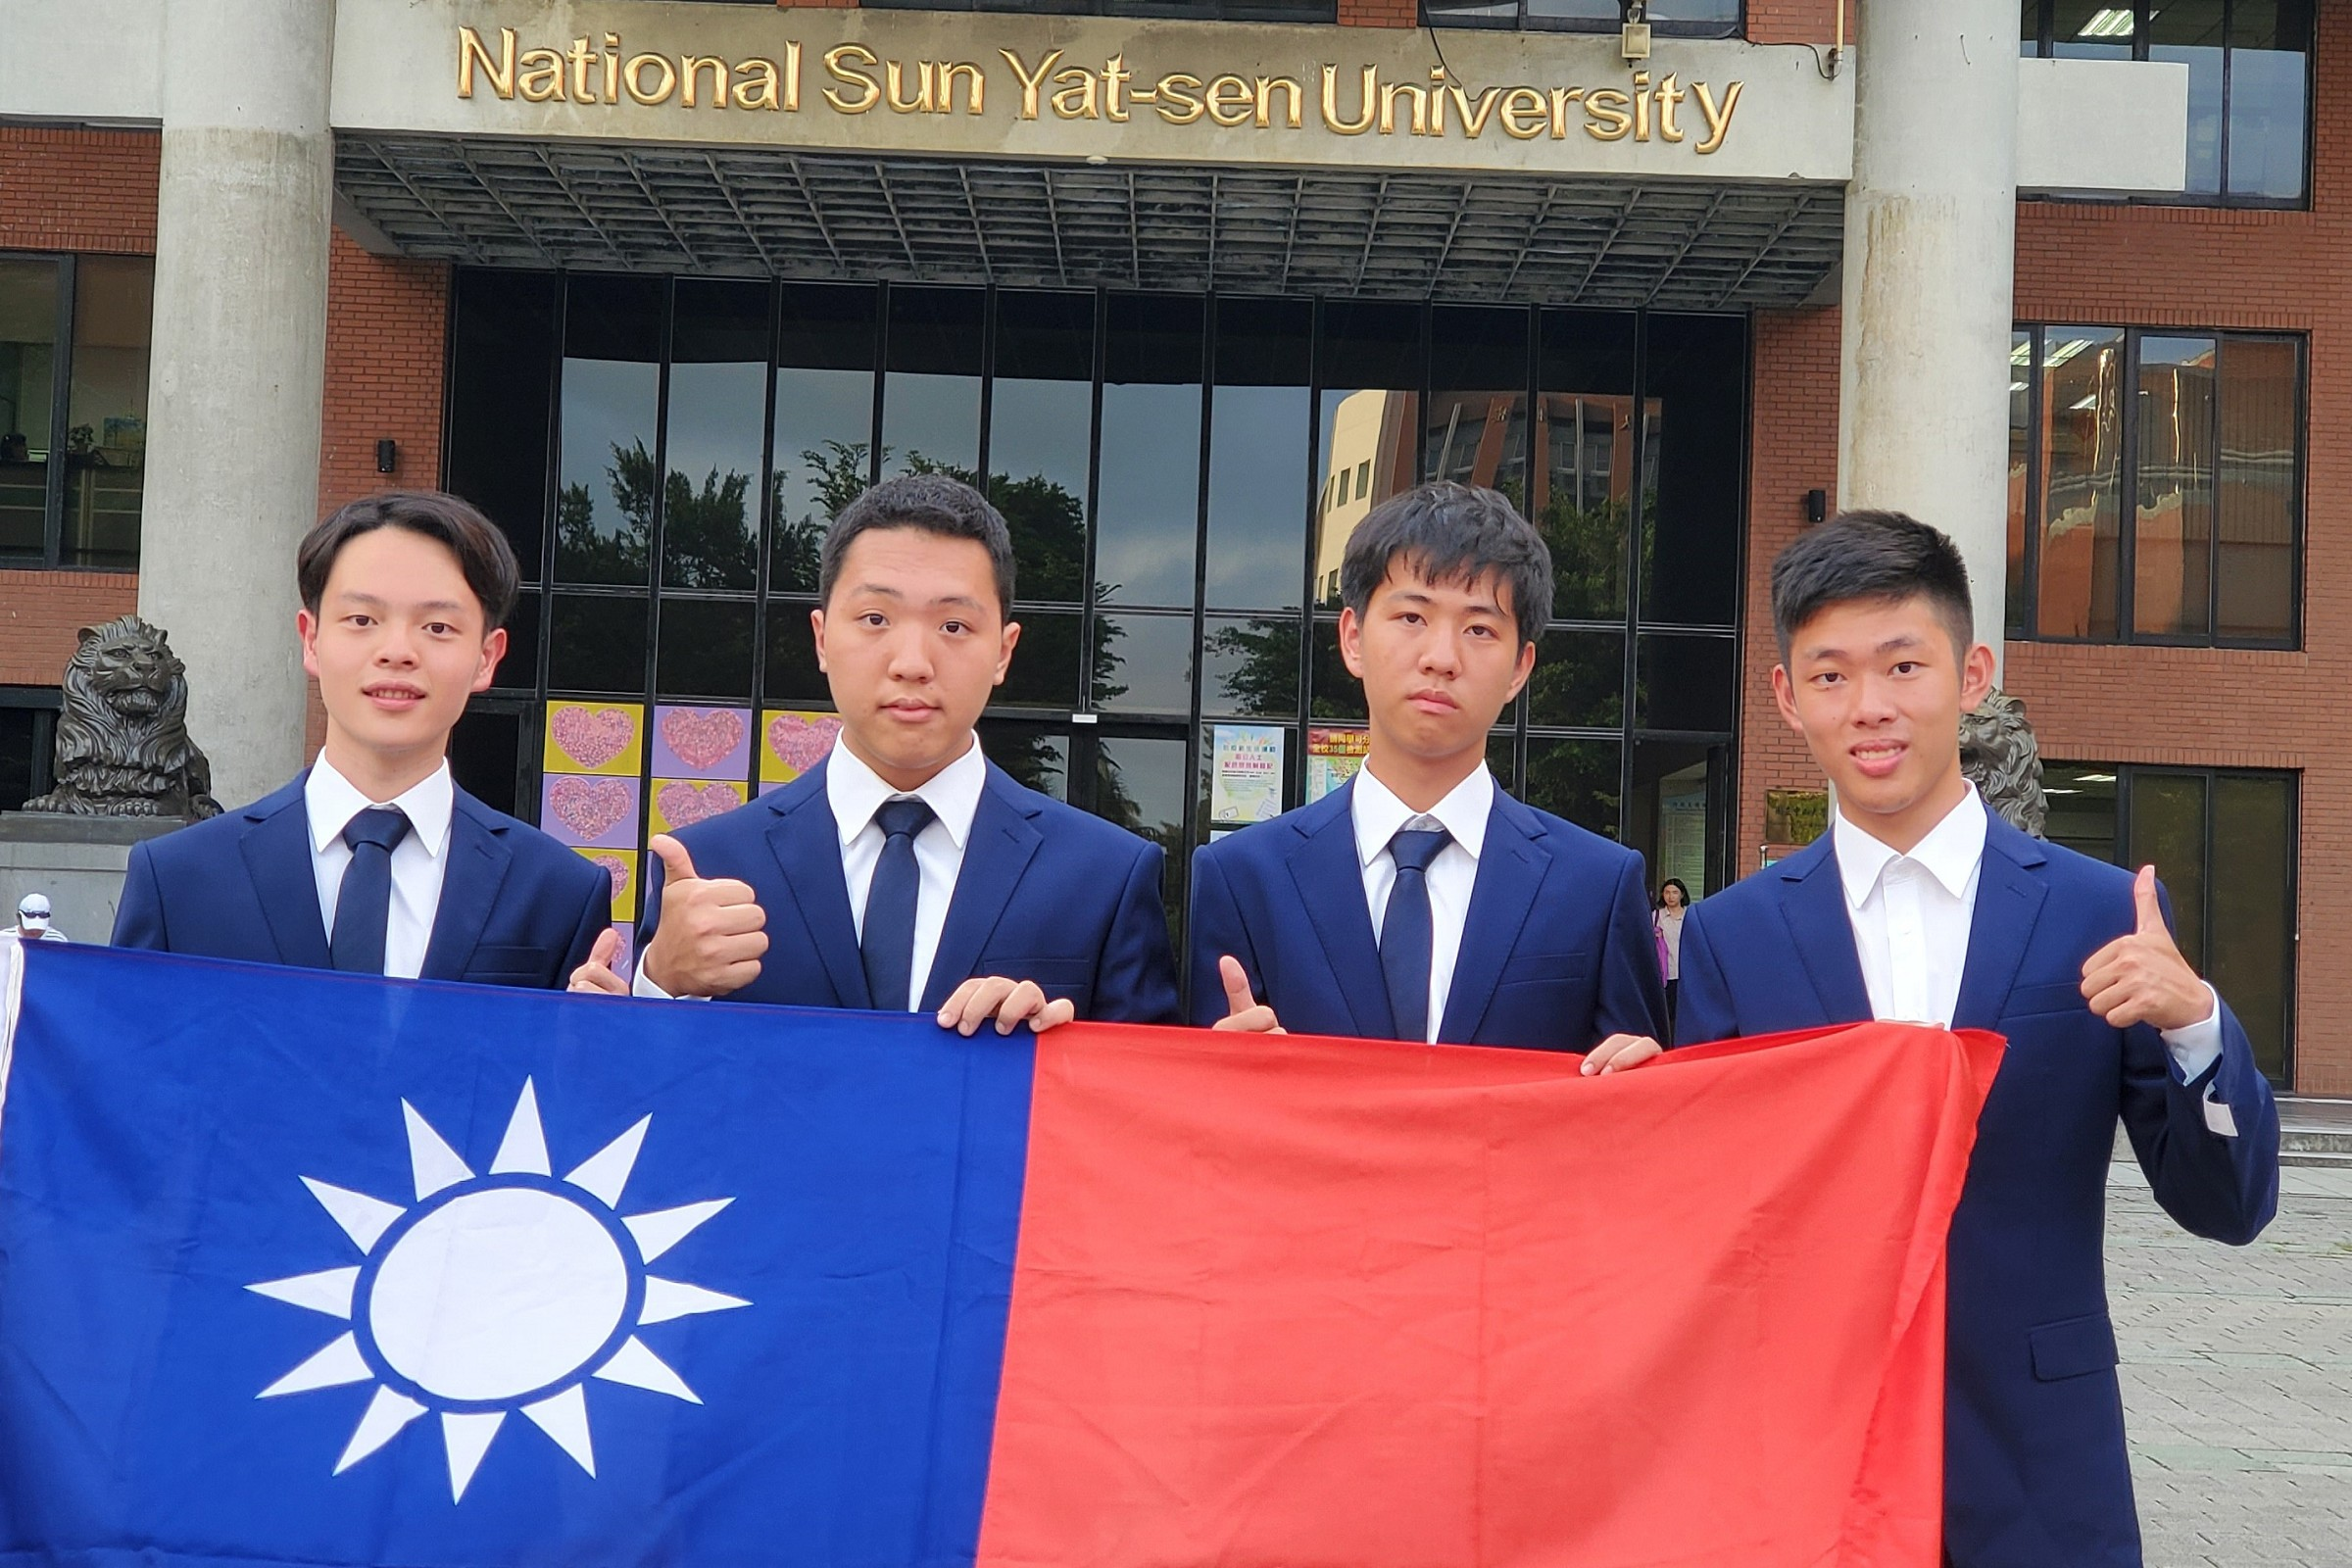 Taiwan won 2 gold and 2 silver medals in the 31st International Biology Olympiad, ranking 4th among participating countries